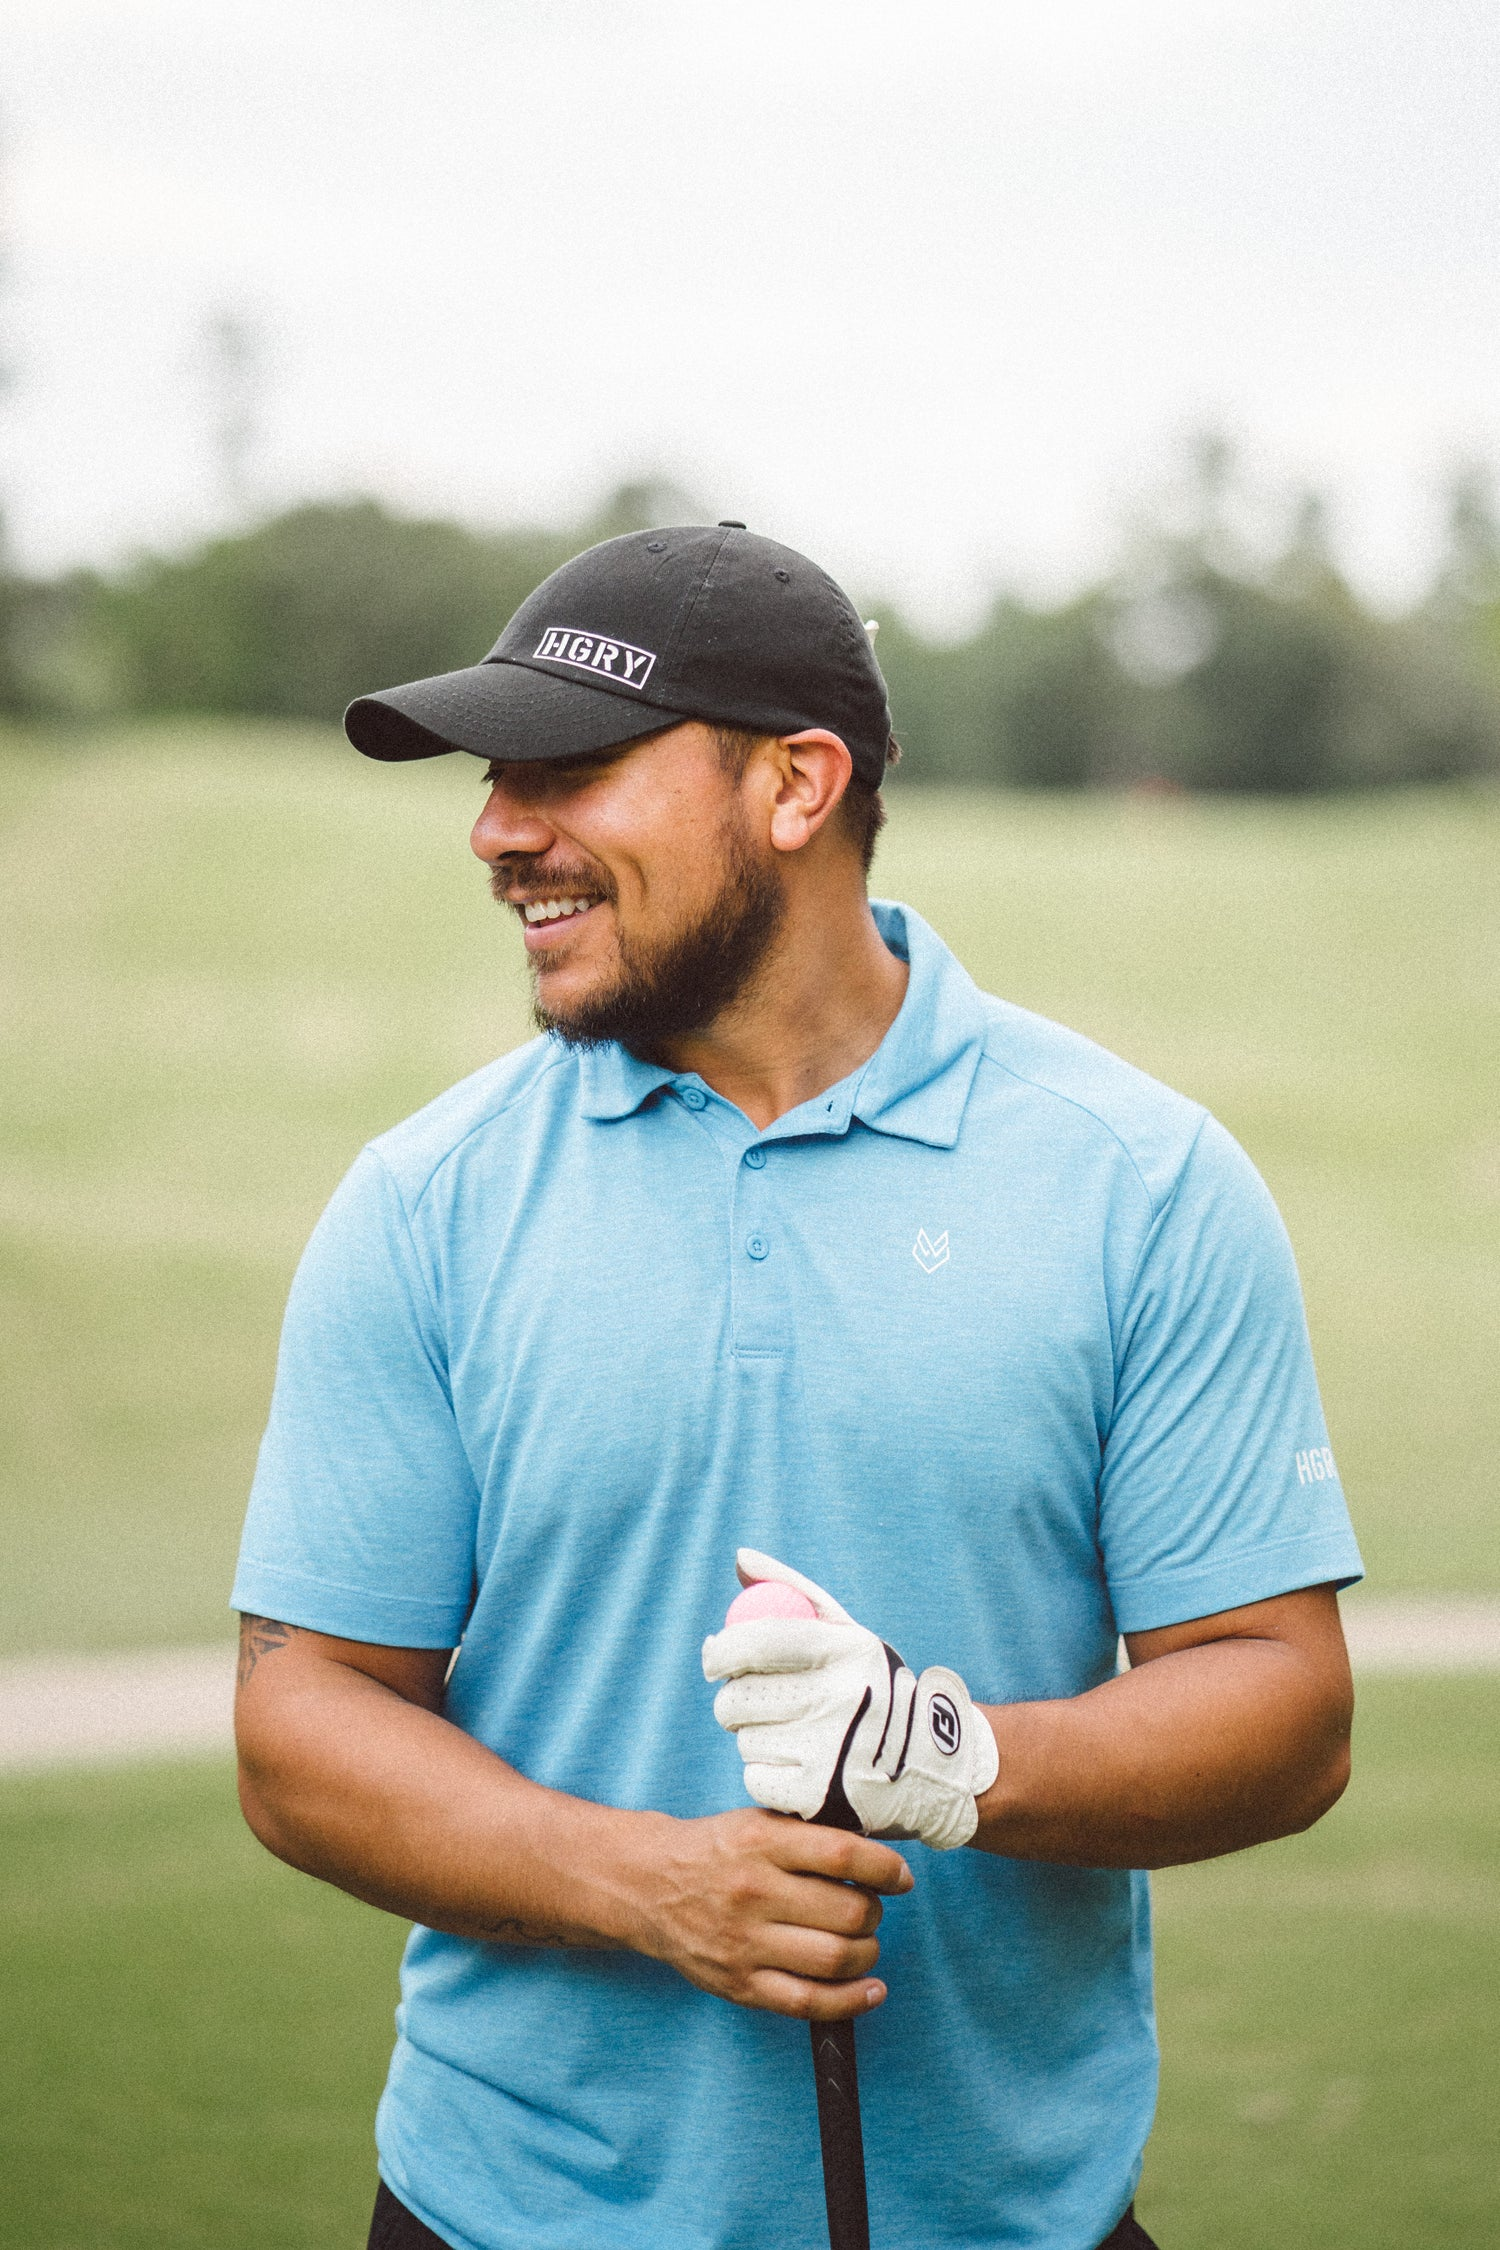 Image of Men's HGRY Golf Polo